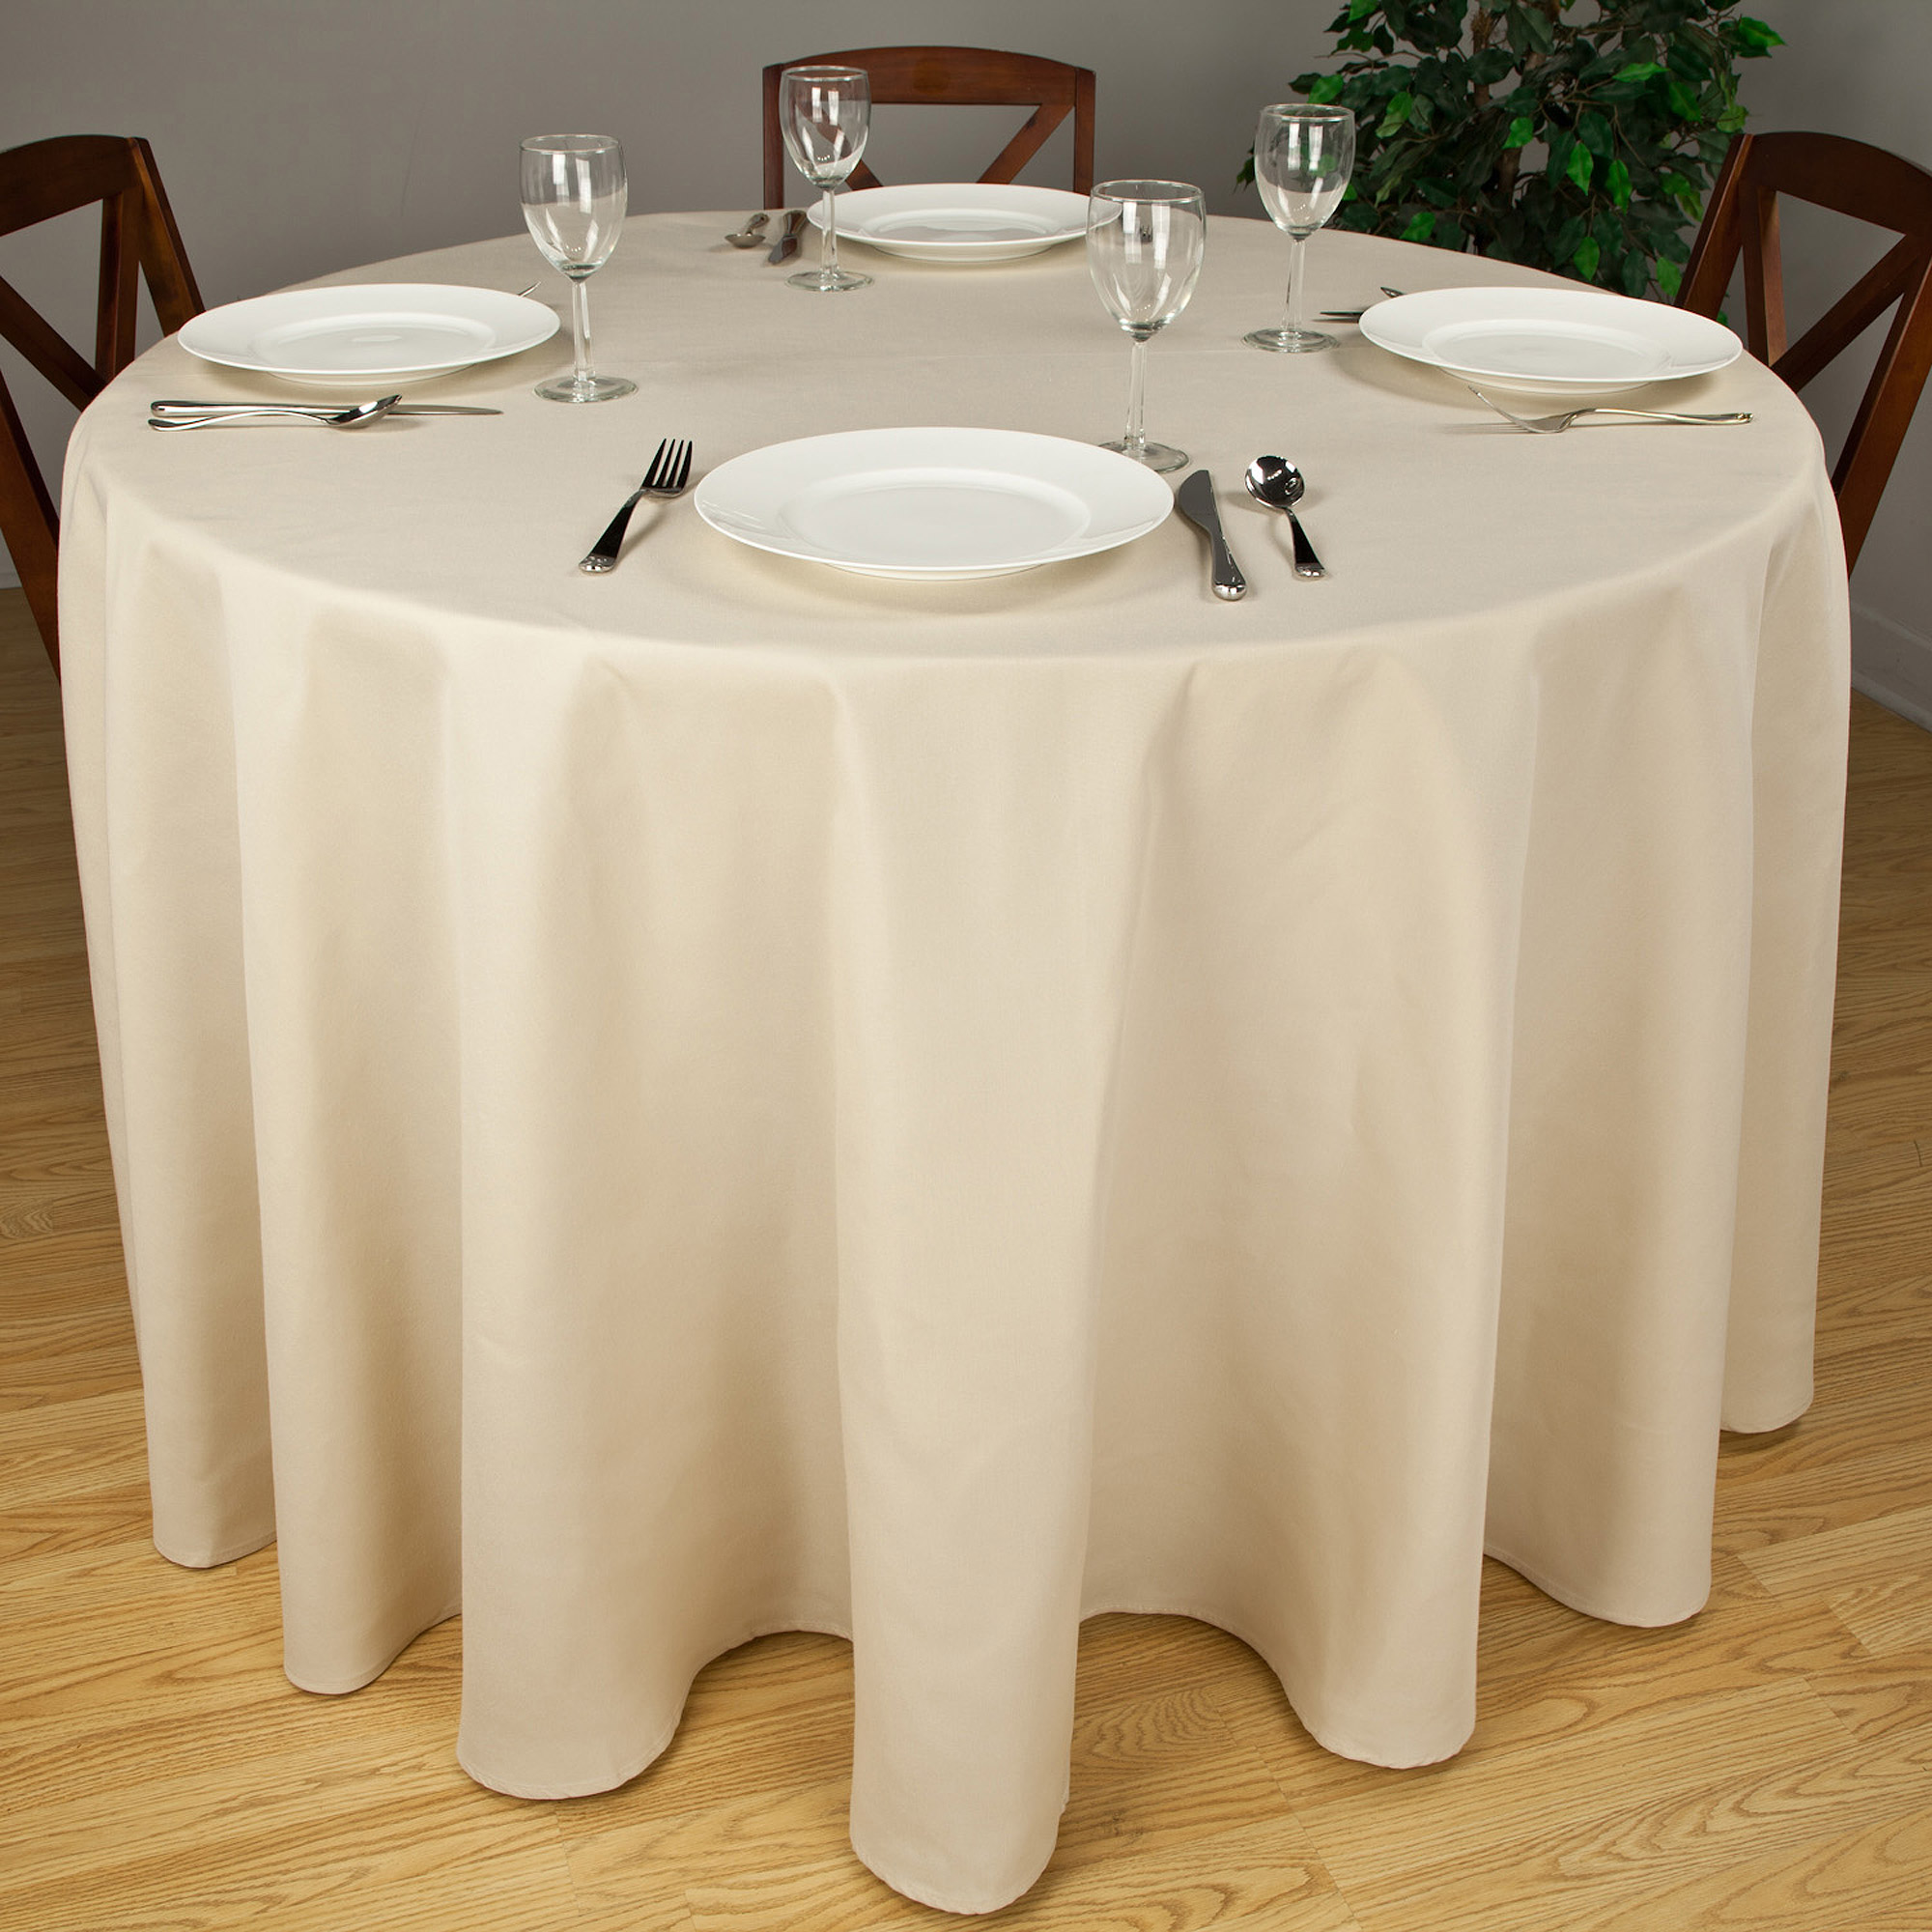 "Riegel Premier Hotel Quality Tablecloth, 90"" Round, Multiple Colors Available"